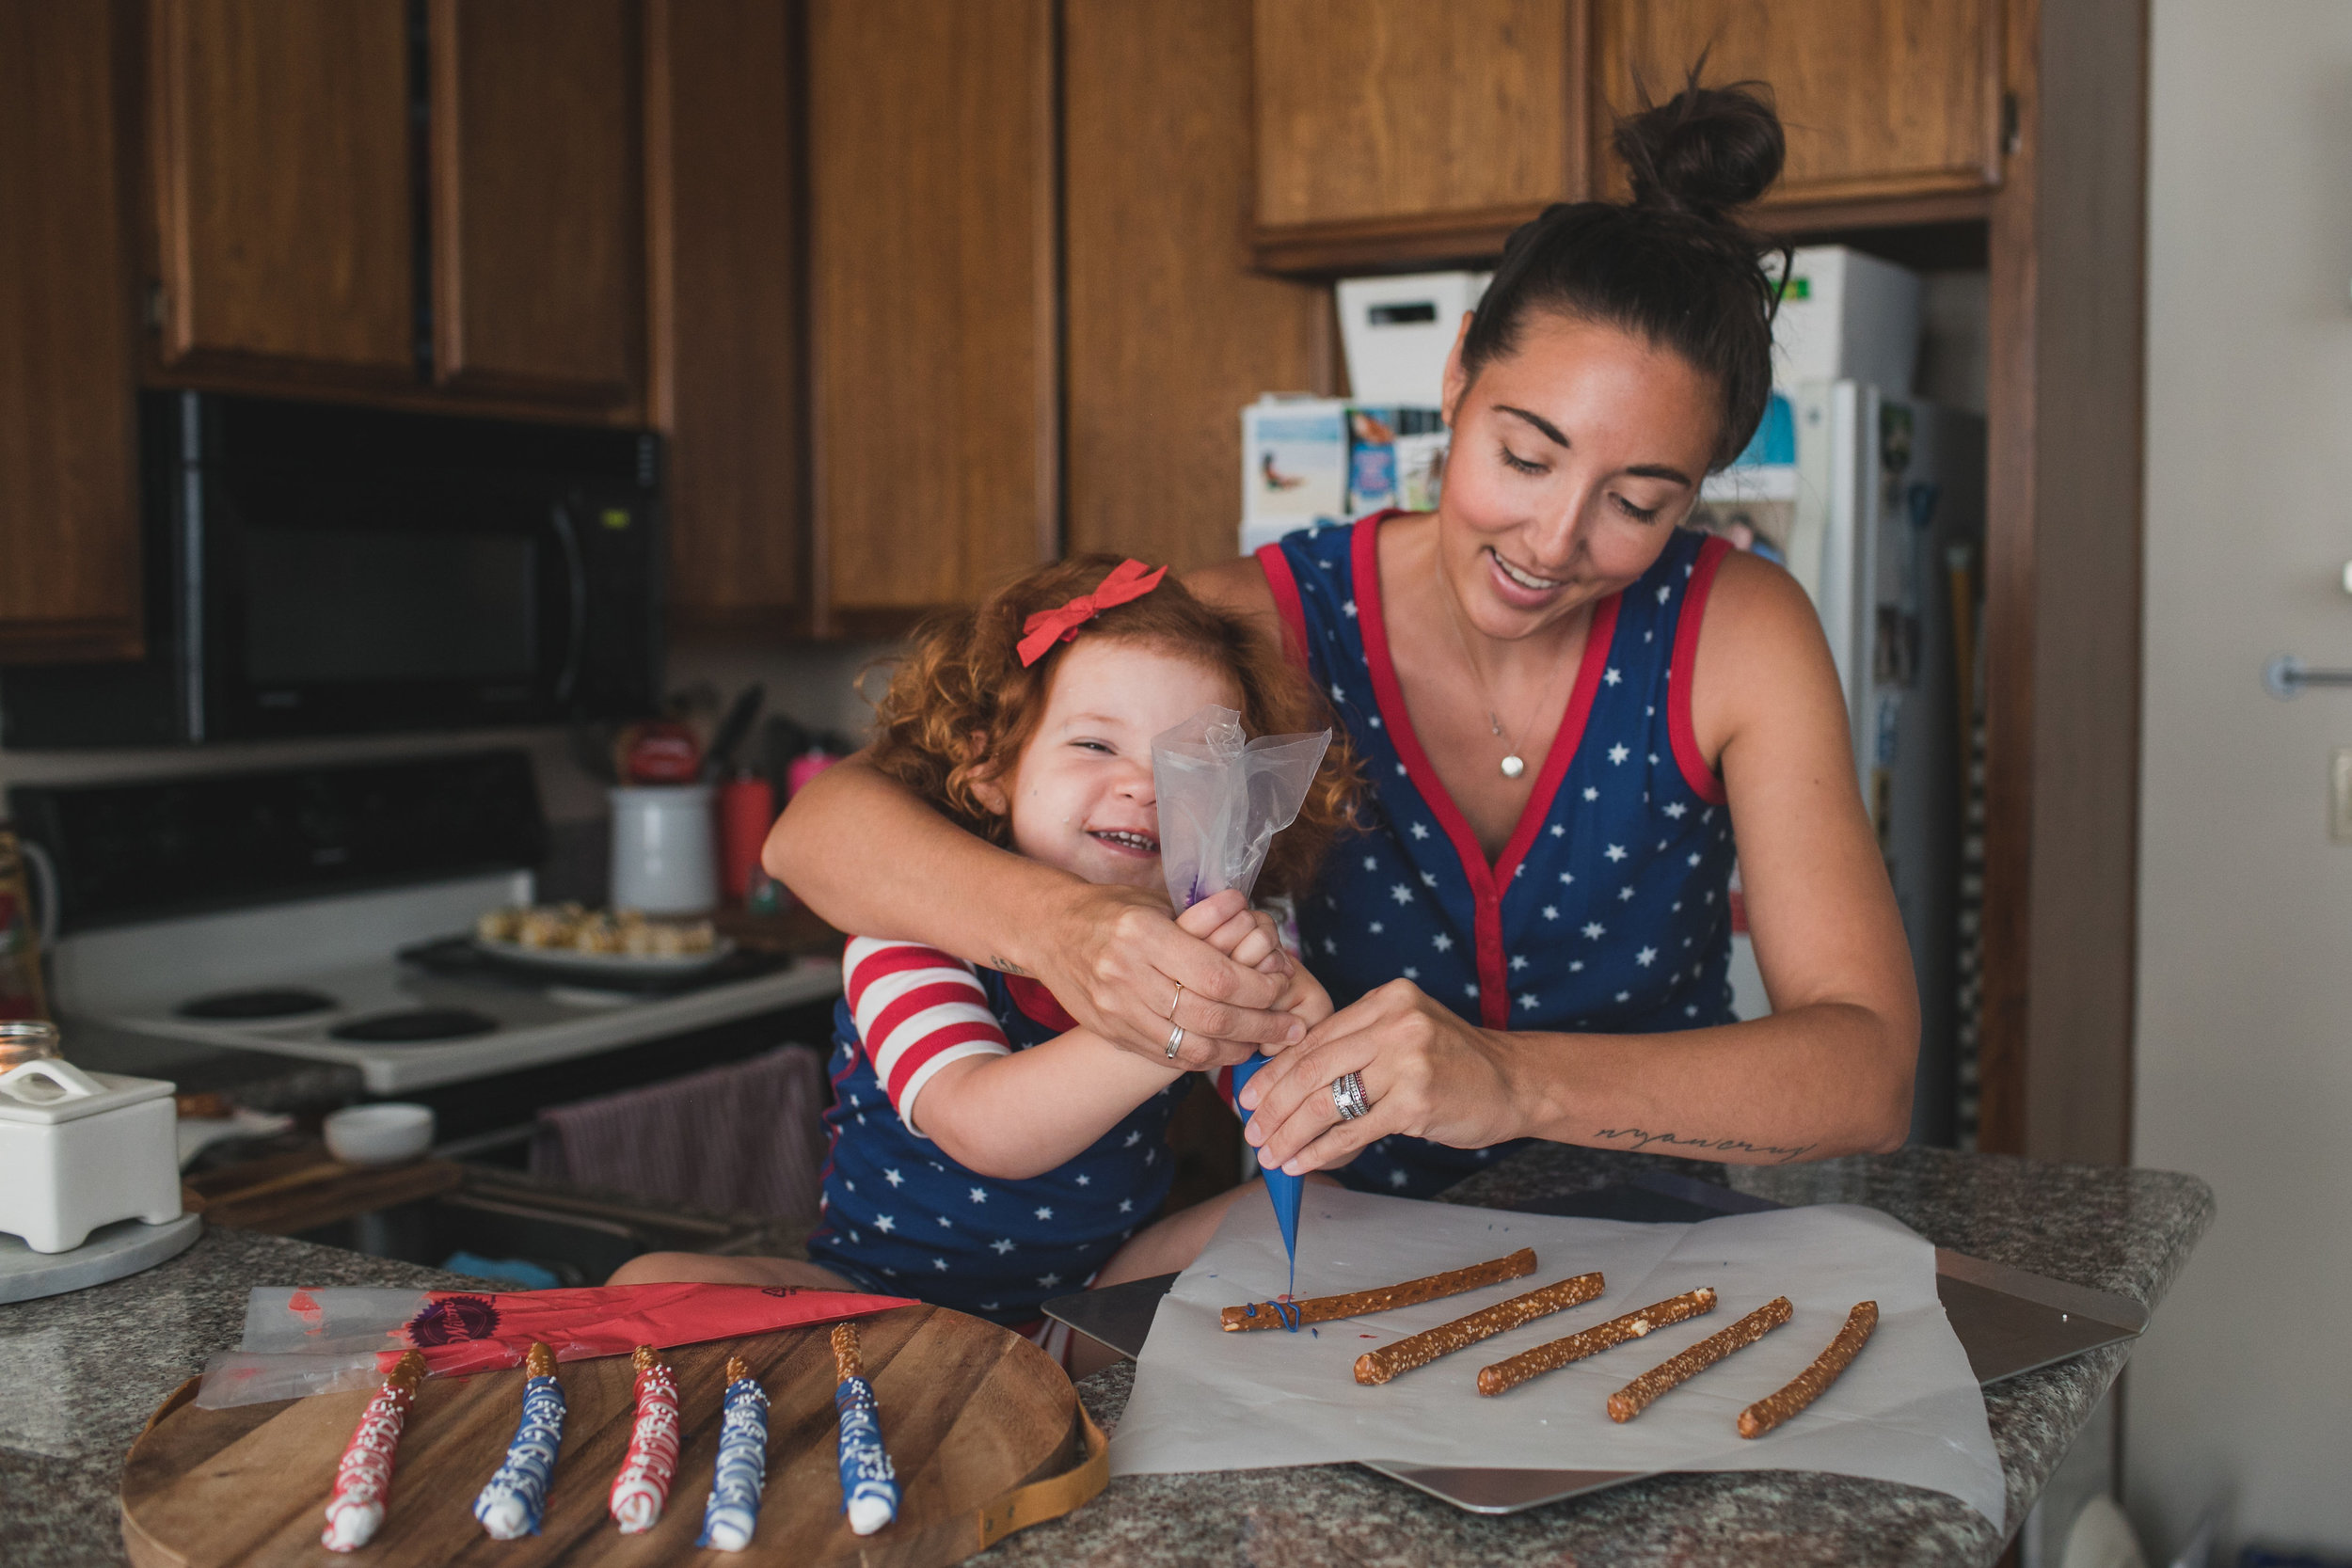 Baby_Boy_Bakery_Fourth_of_July_Lily_Ro_Photography-8565.jpg